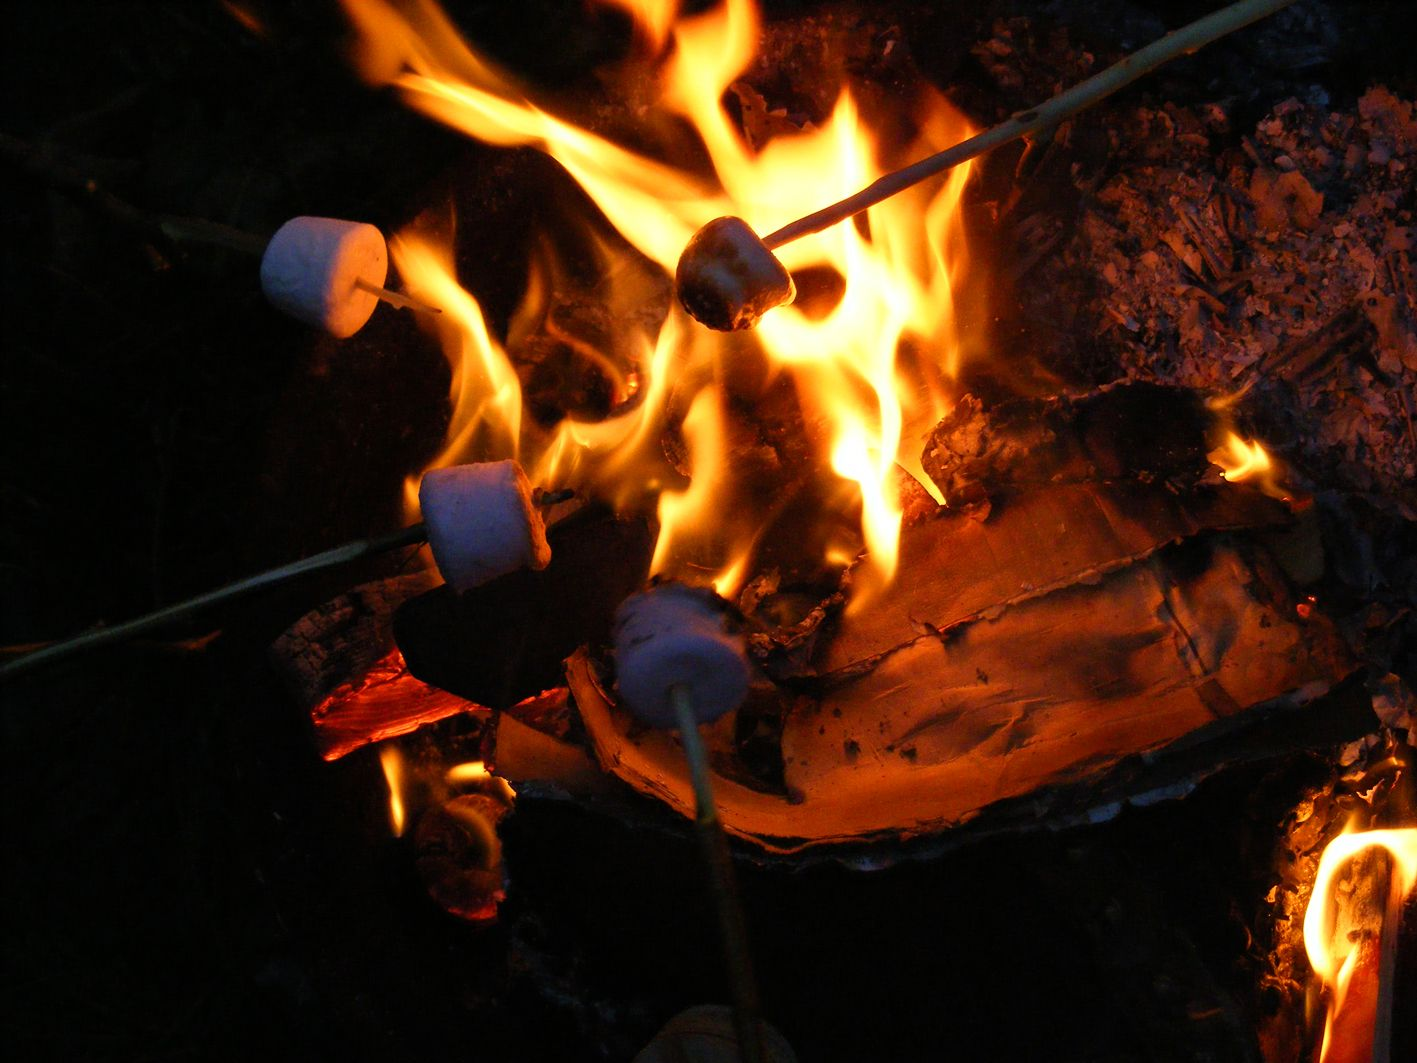 Image result for bonfire roasting marshmallows photos